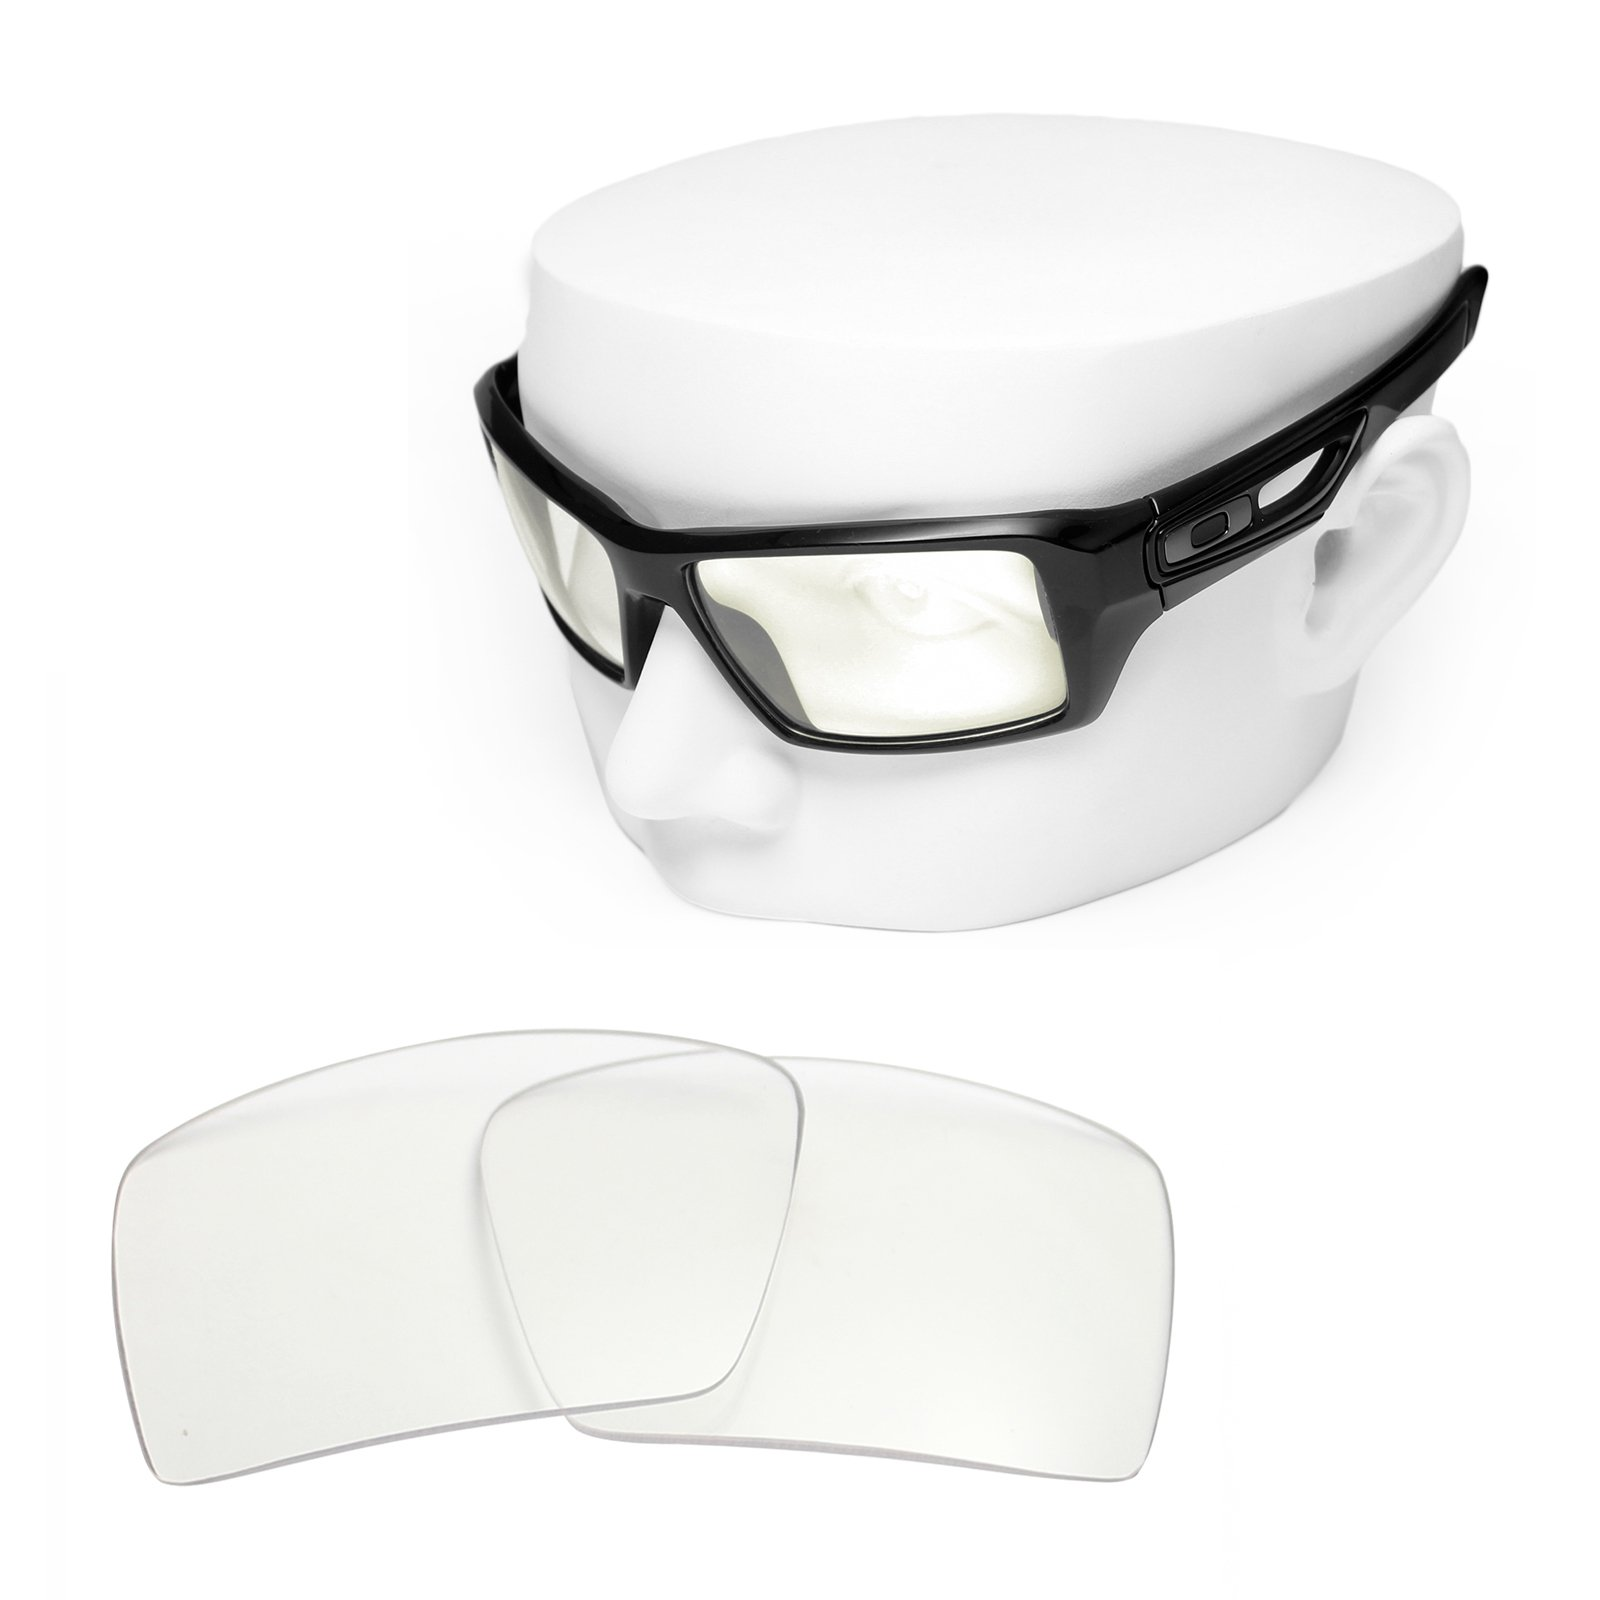 OOWLIT Replacement Sunglass Lenses for Oakley Eyepatch 2 HD Clear Non-polarized by OOWLIT